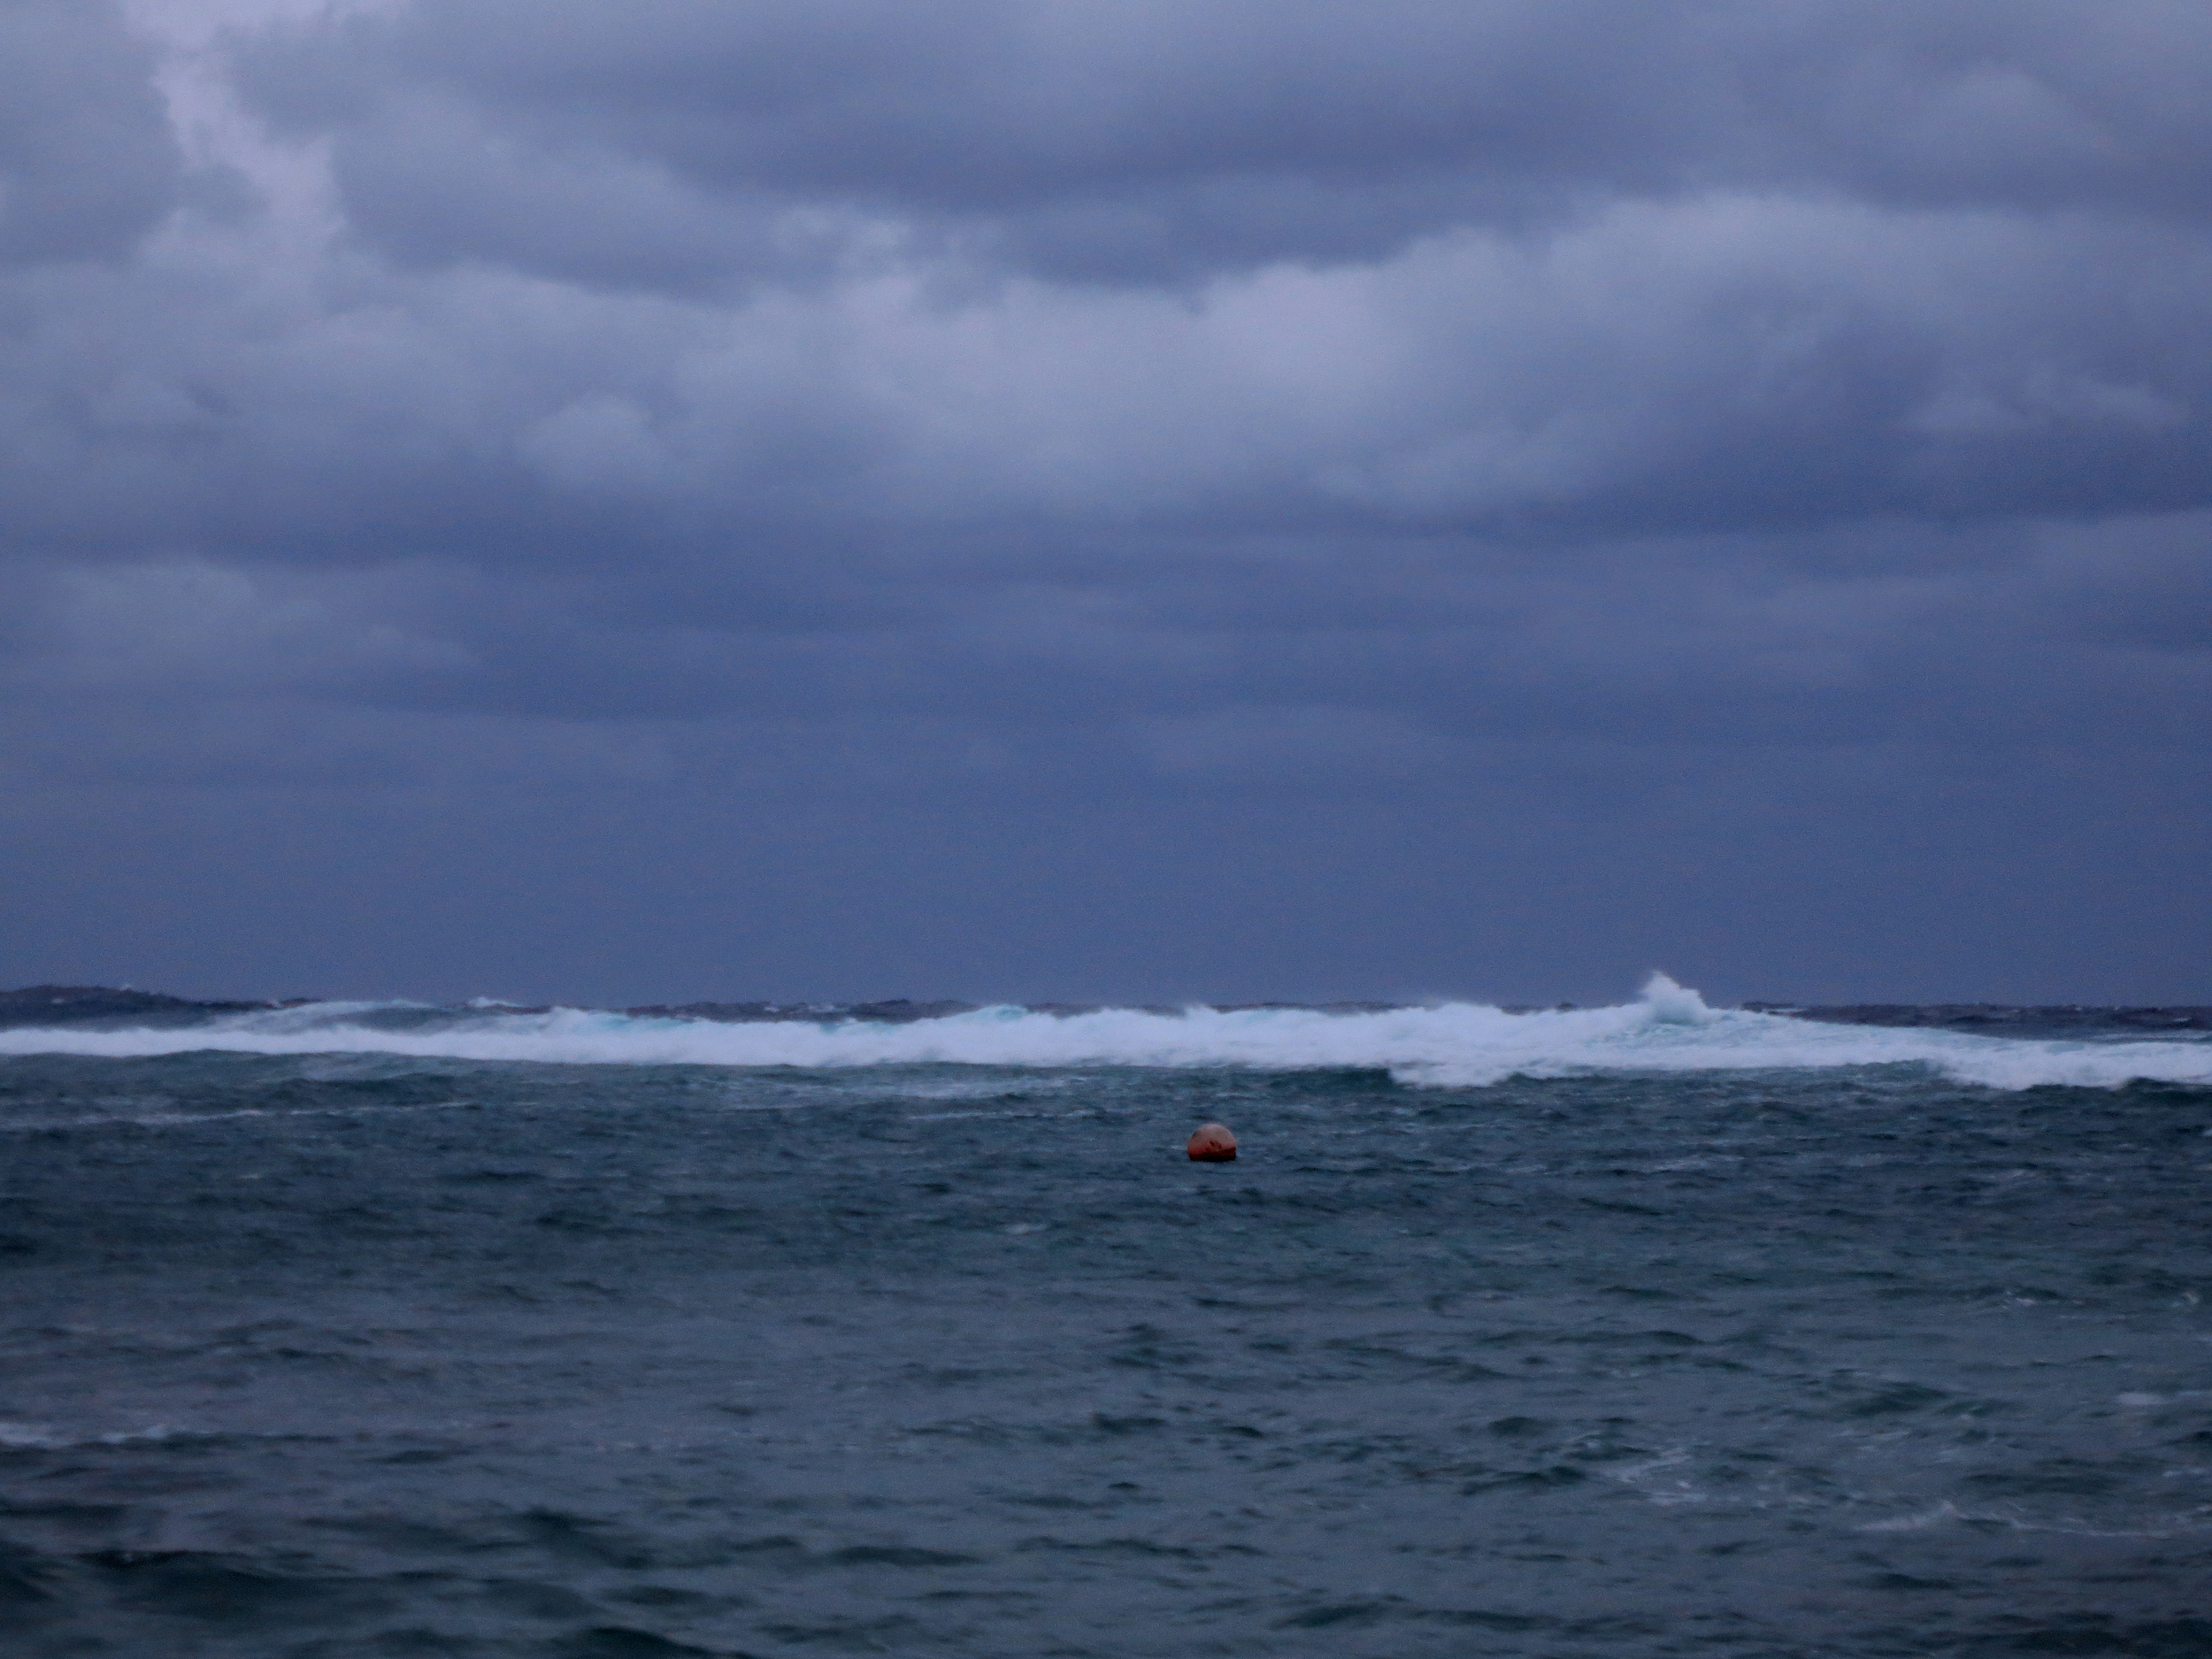 Same buoy, different day!